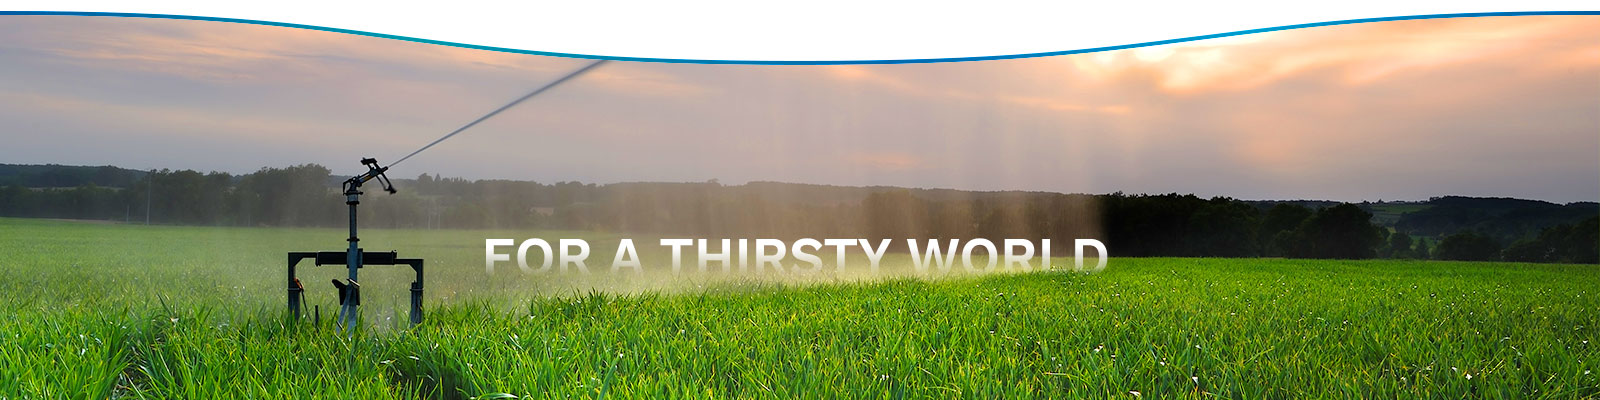 thirsty-world-drilling-water